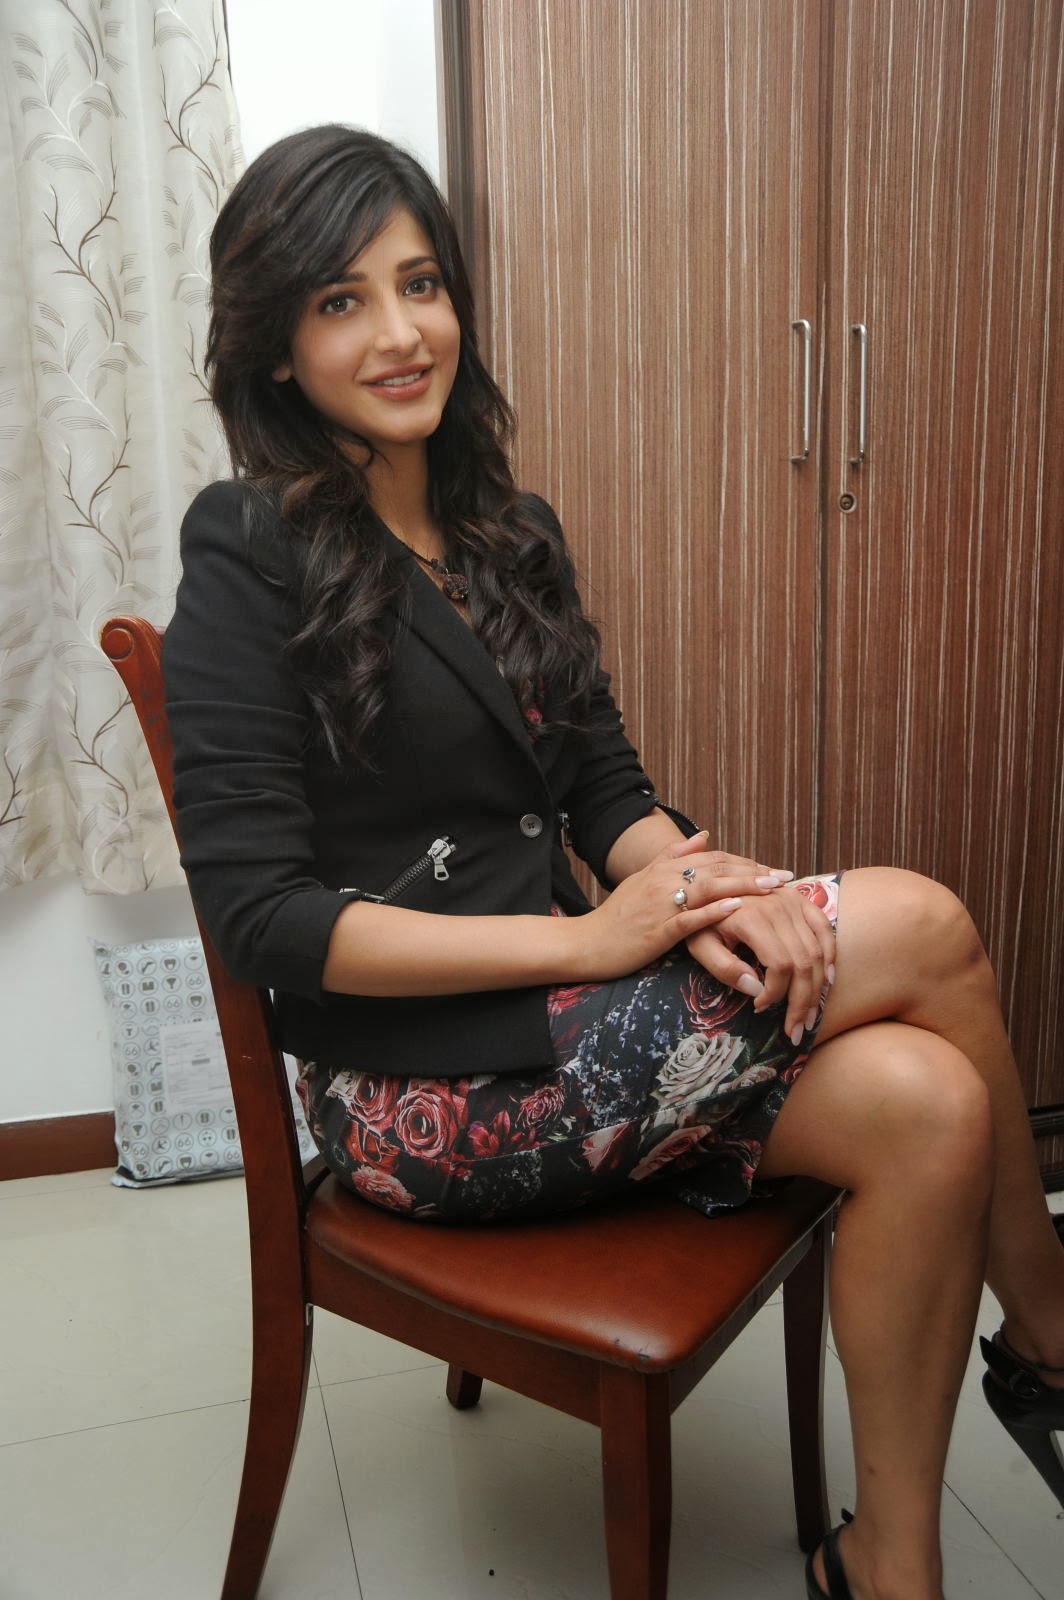 Celebrity Legs And Feets More Of Shruthi Hassan S Hot And Sexy Legs